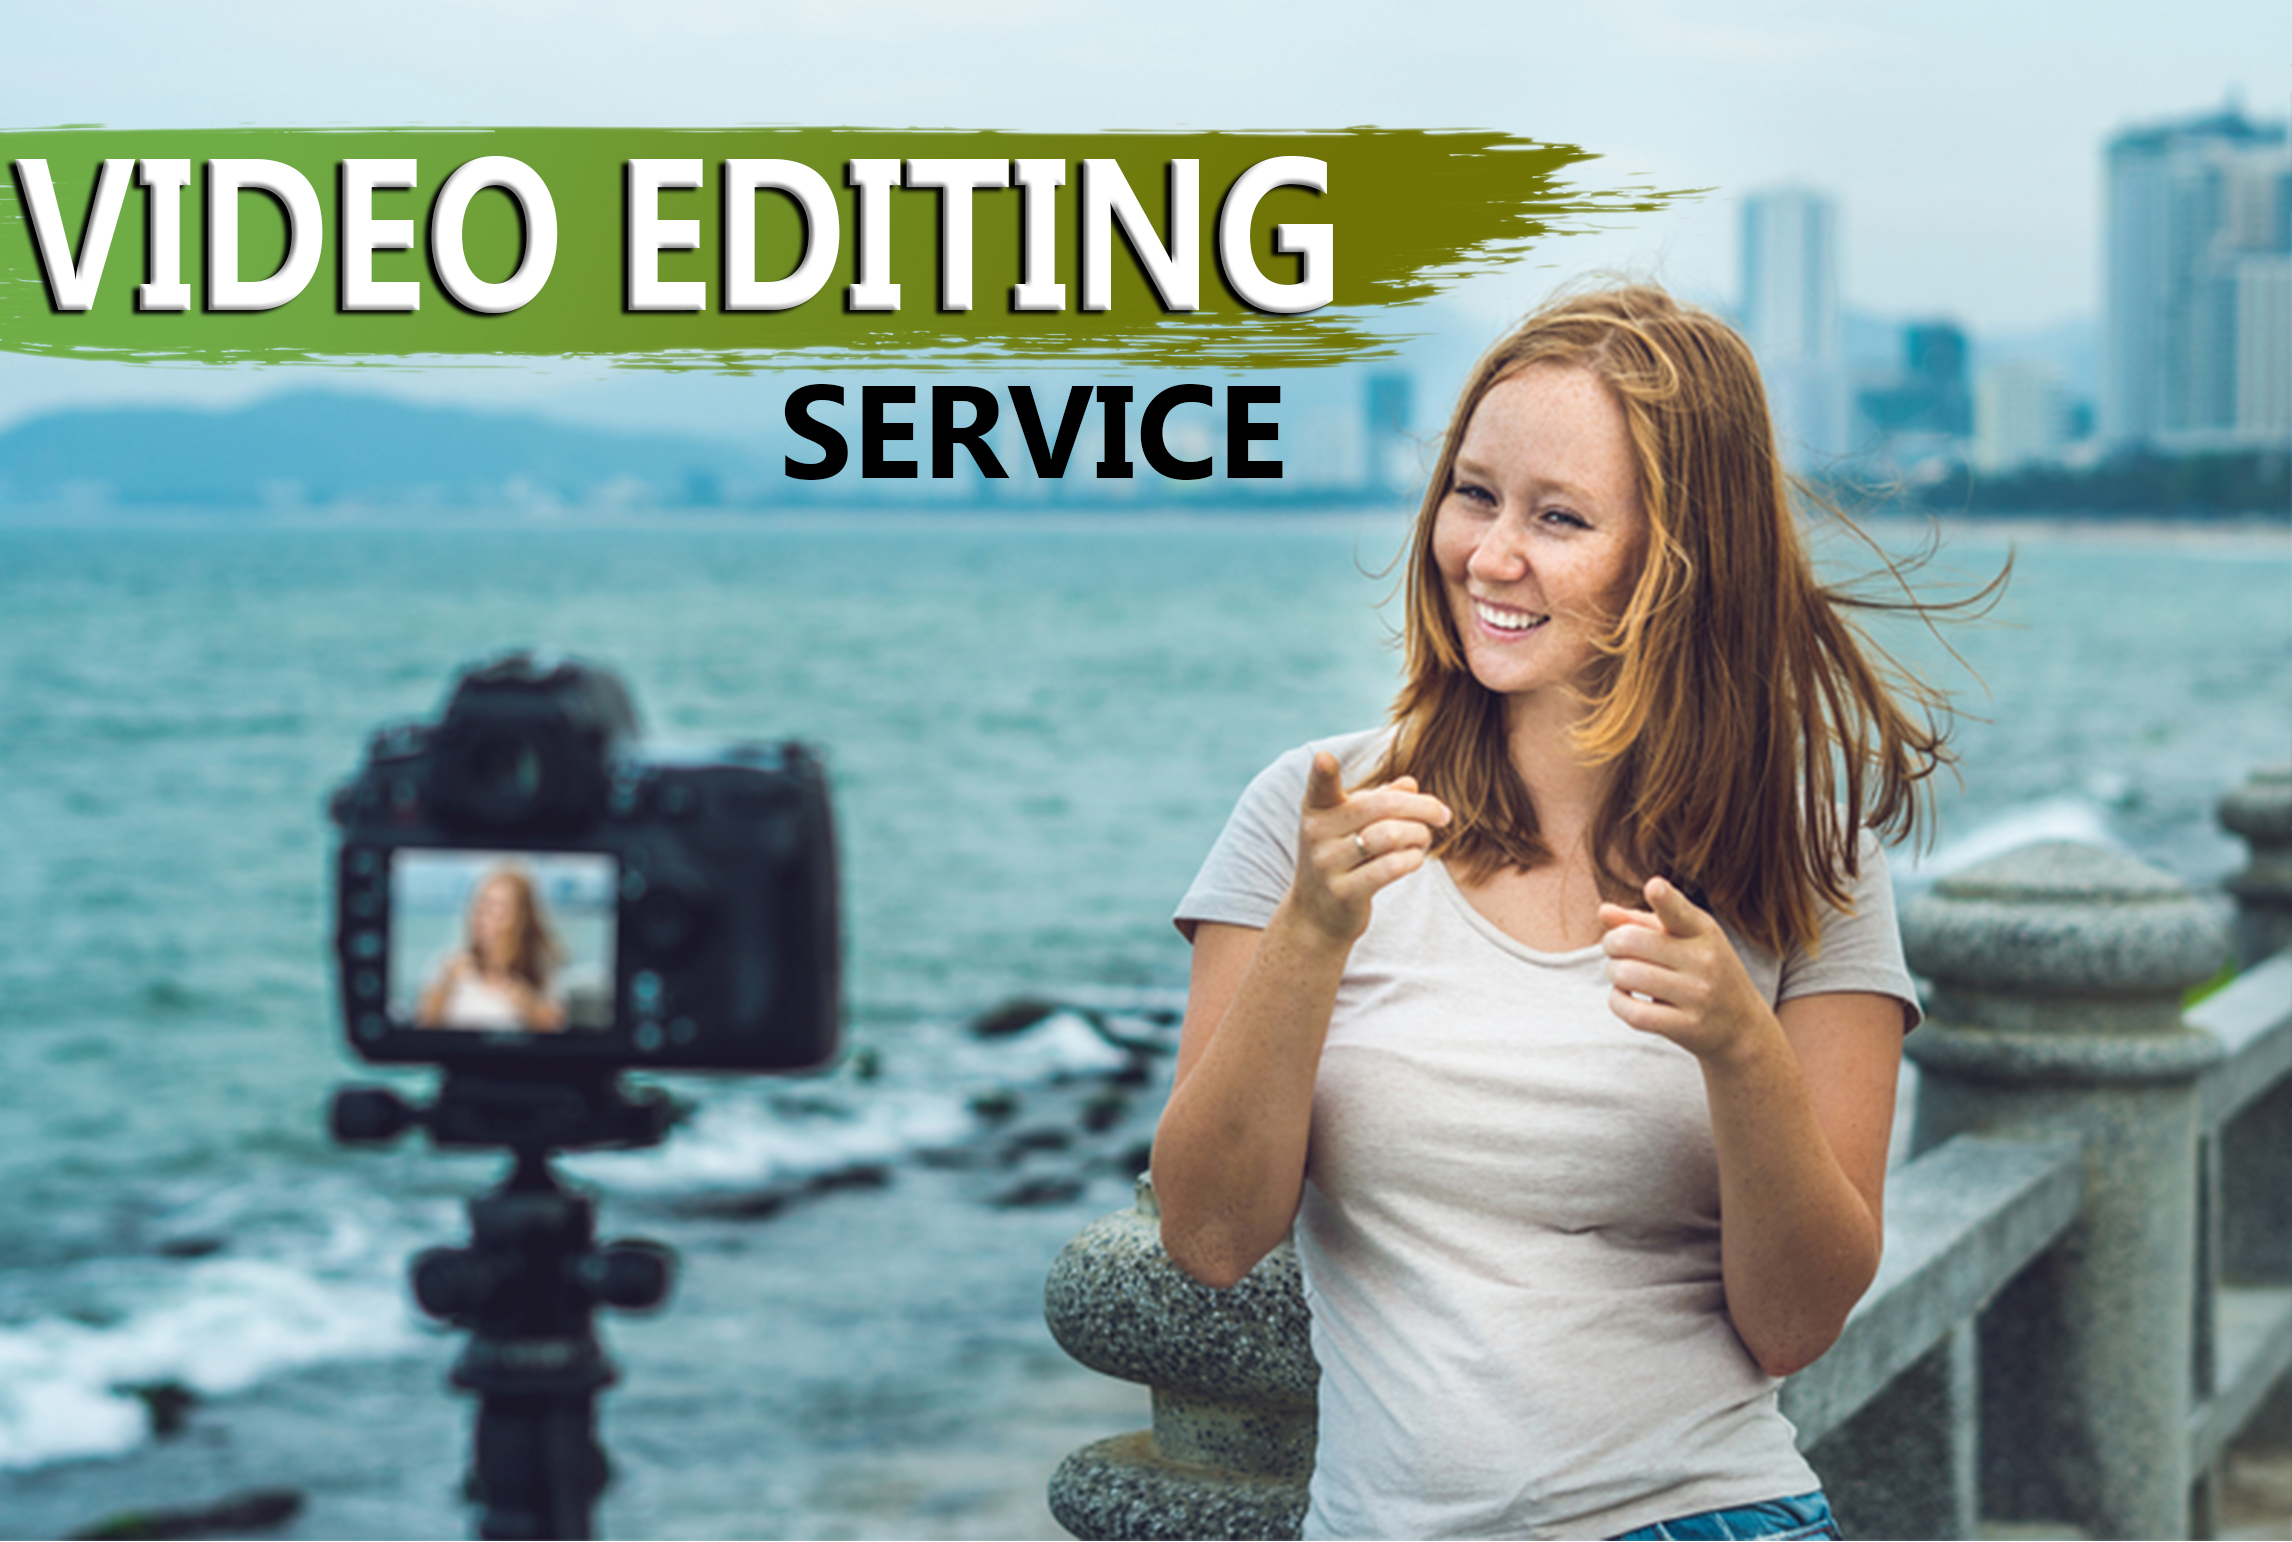 I will add special or visual effects on video after effects